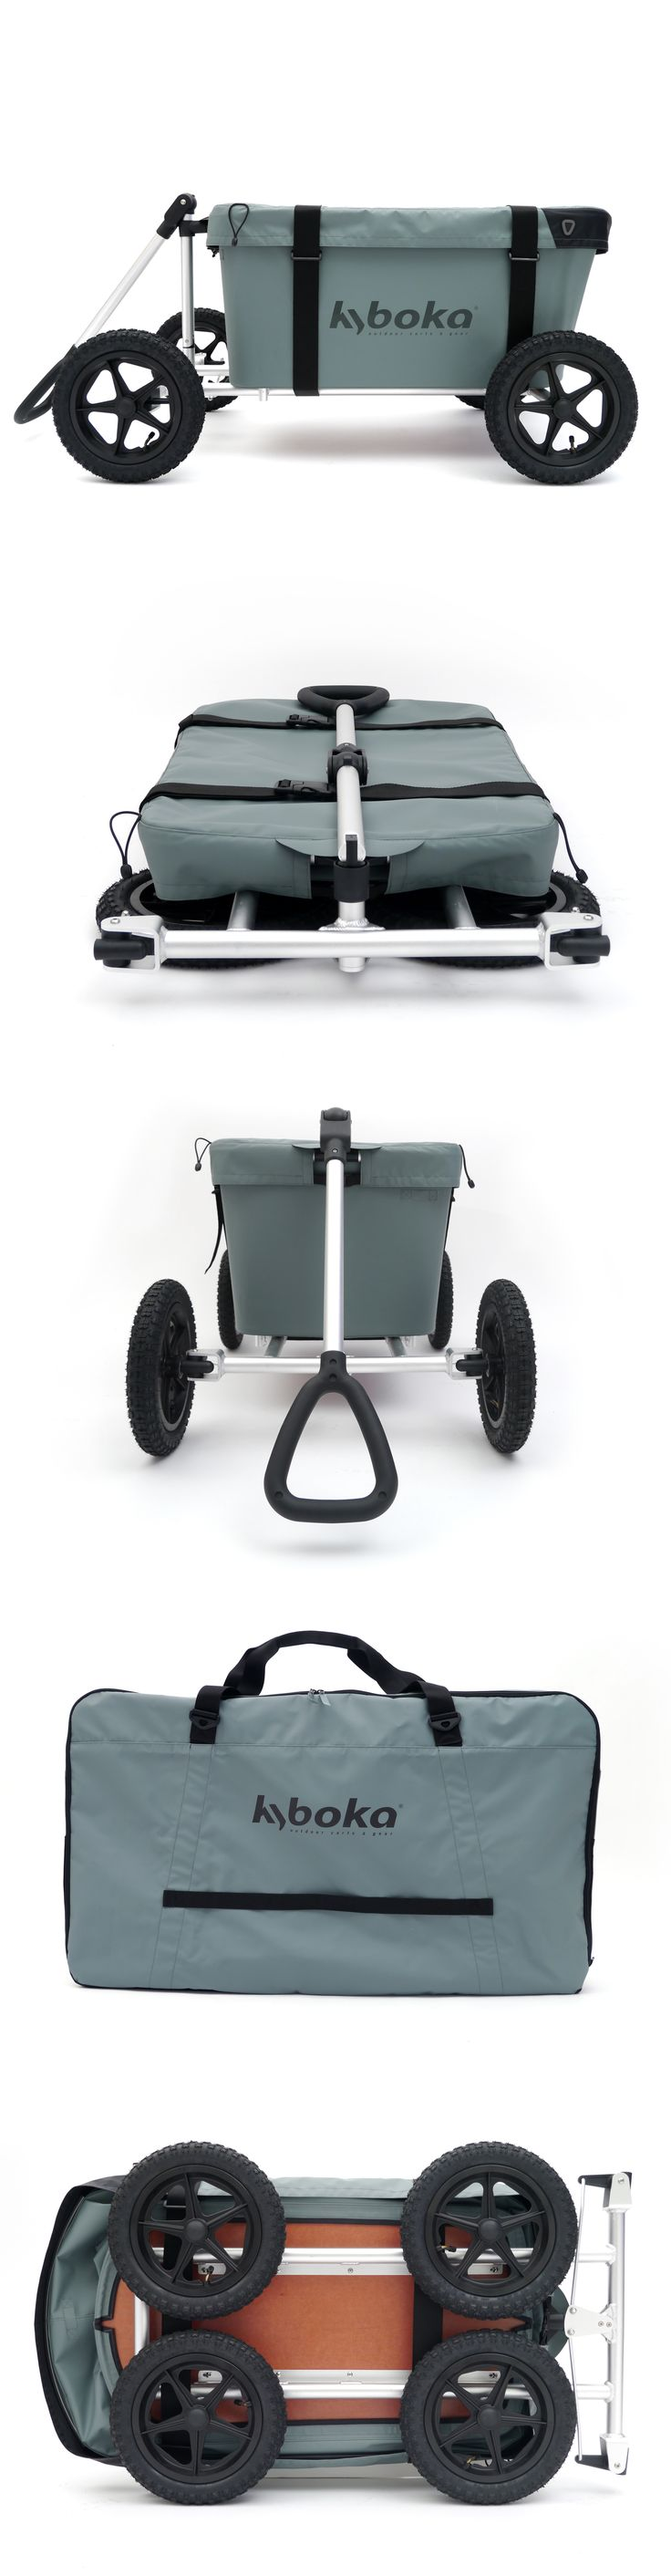 Dutch design! Cart for outdoor use, foldable into a small package. Light weight, ergonomic and easy to tow.